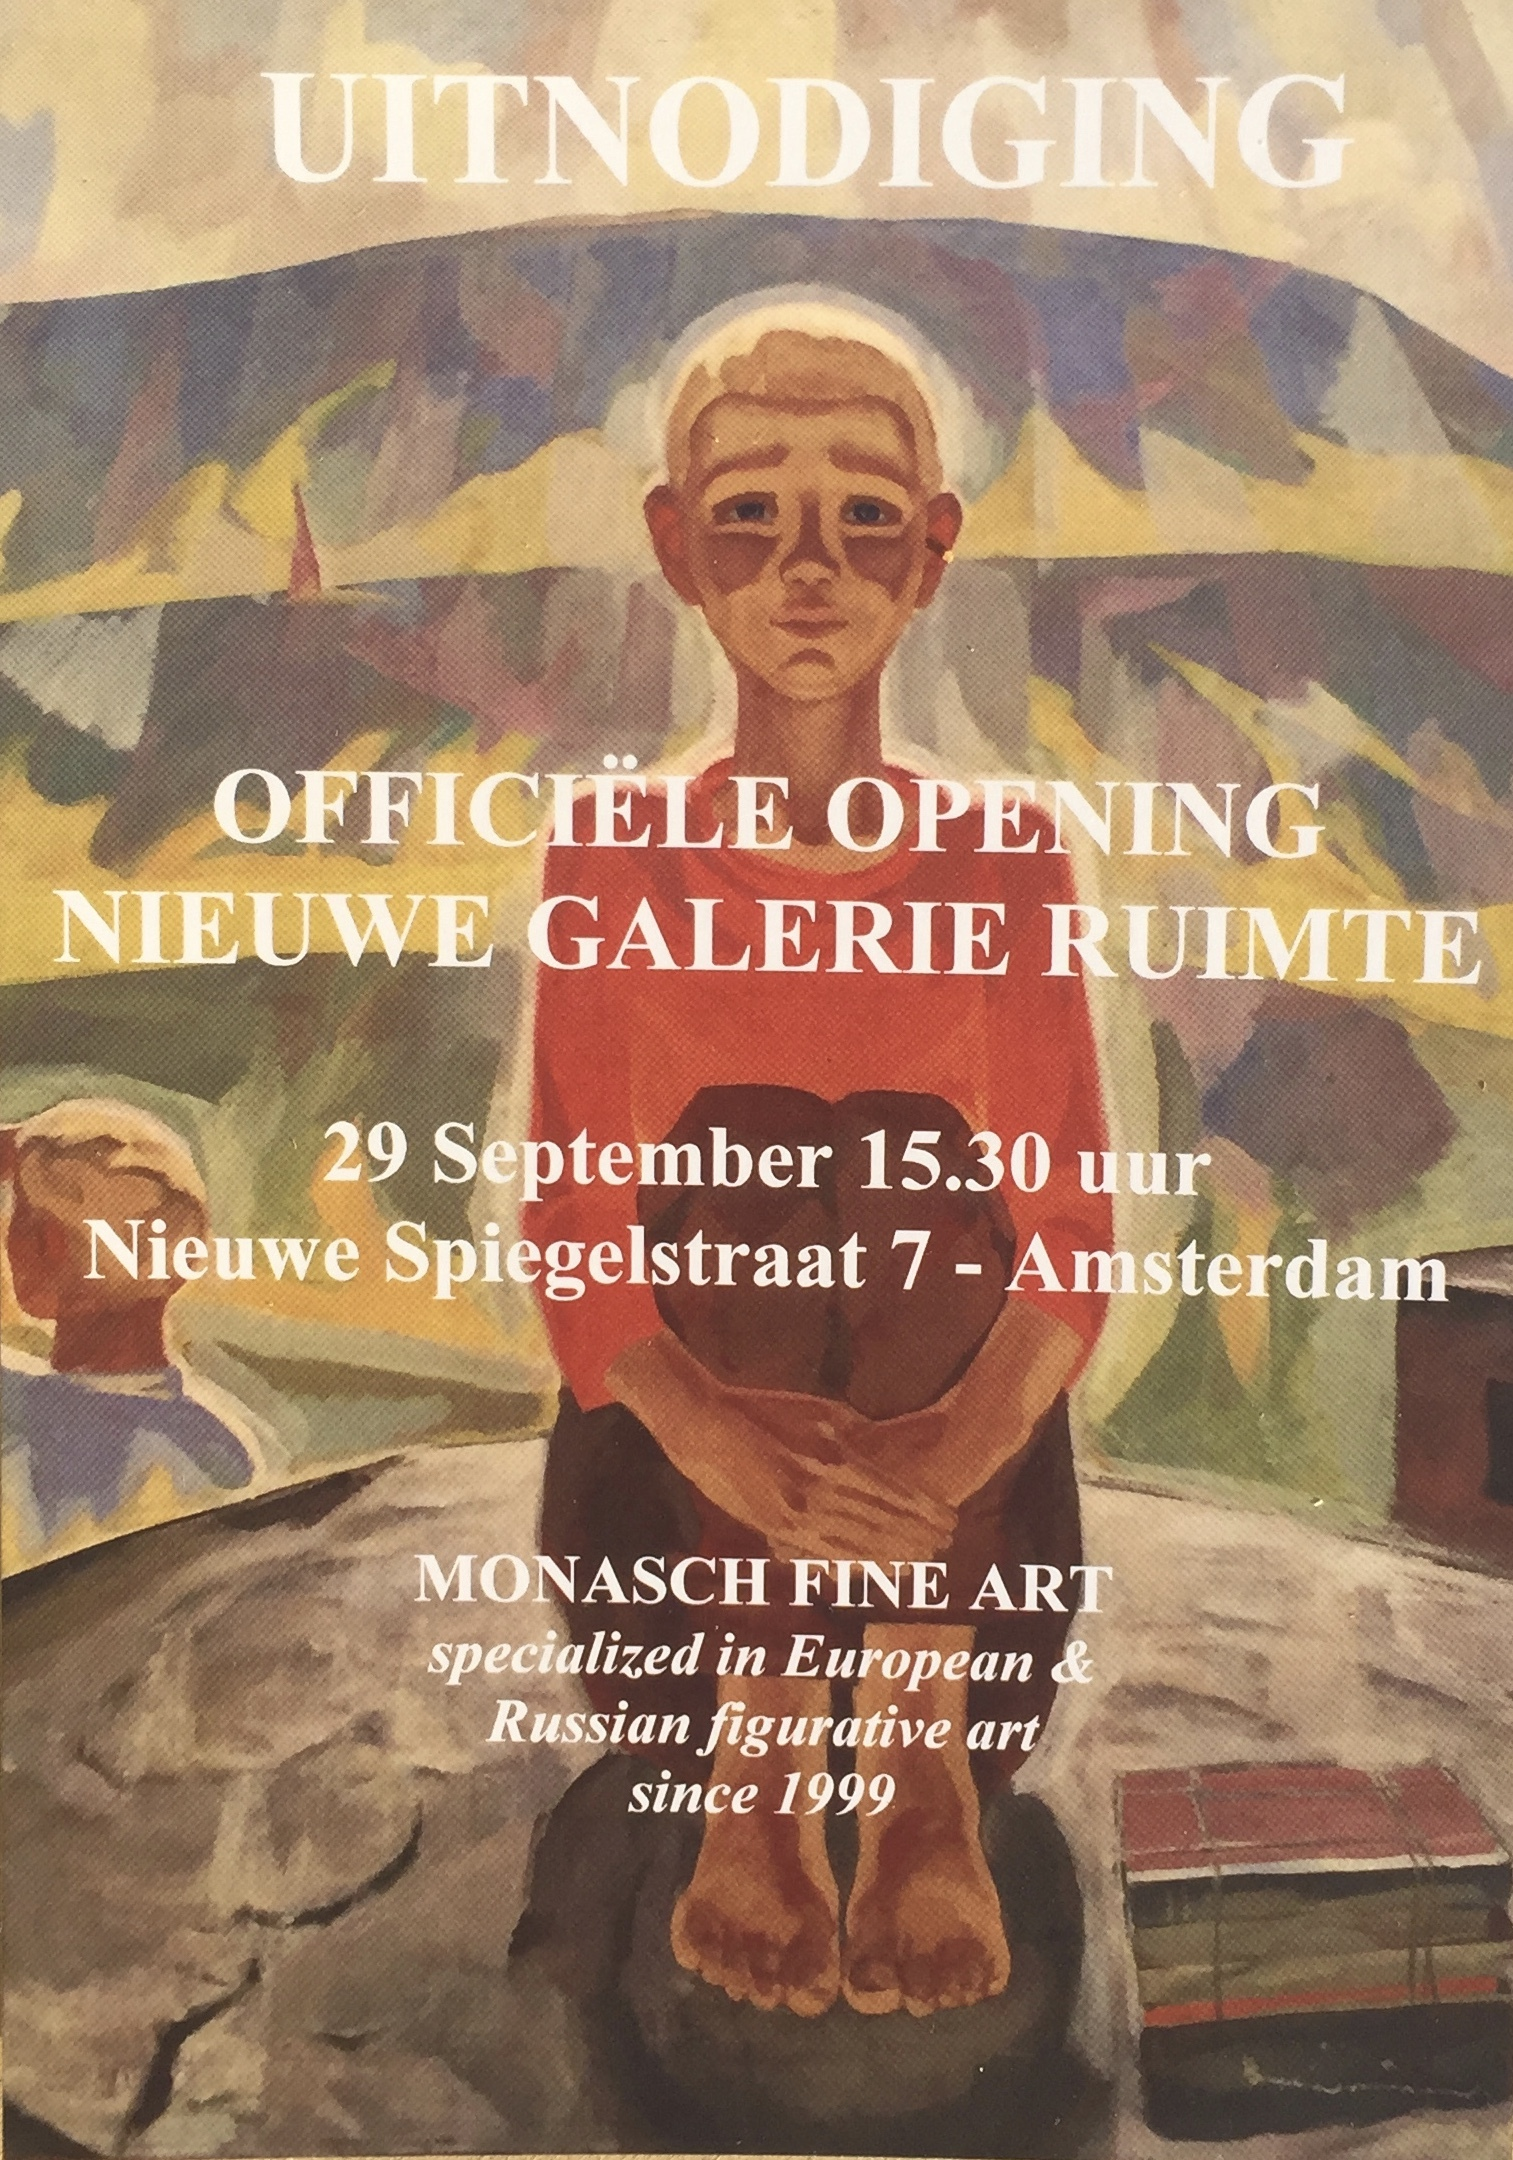 Amsterdam - Start of the season - this weekend - September 29-30 - 11am-6pm